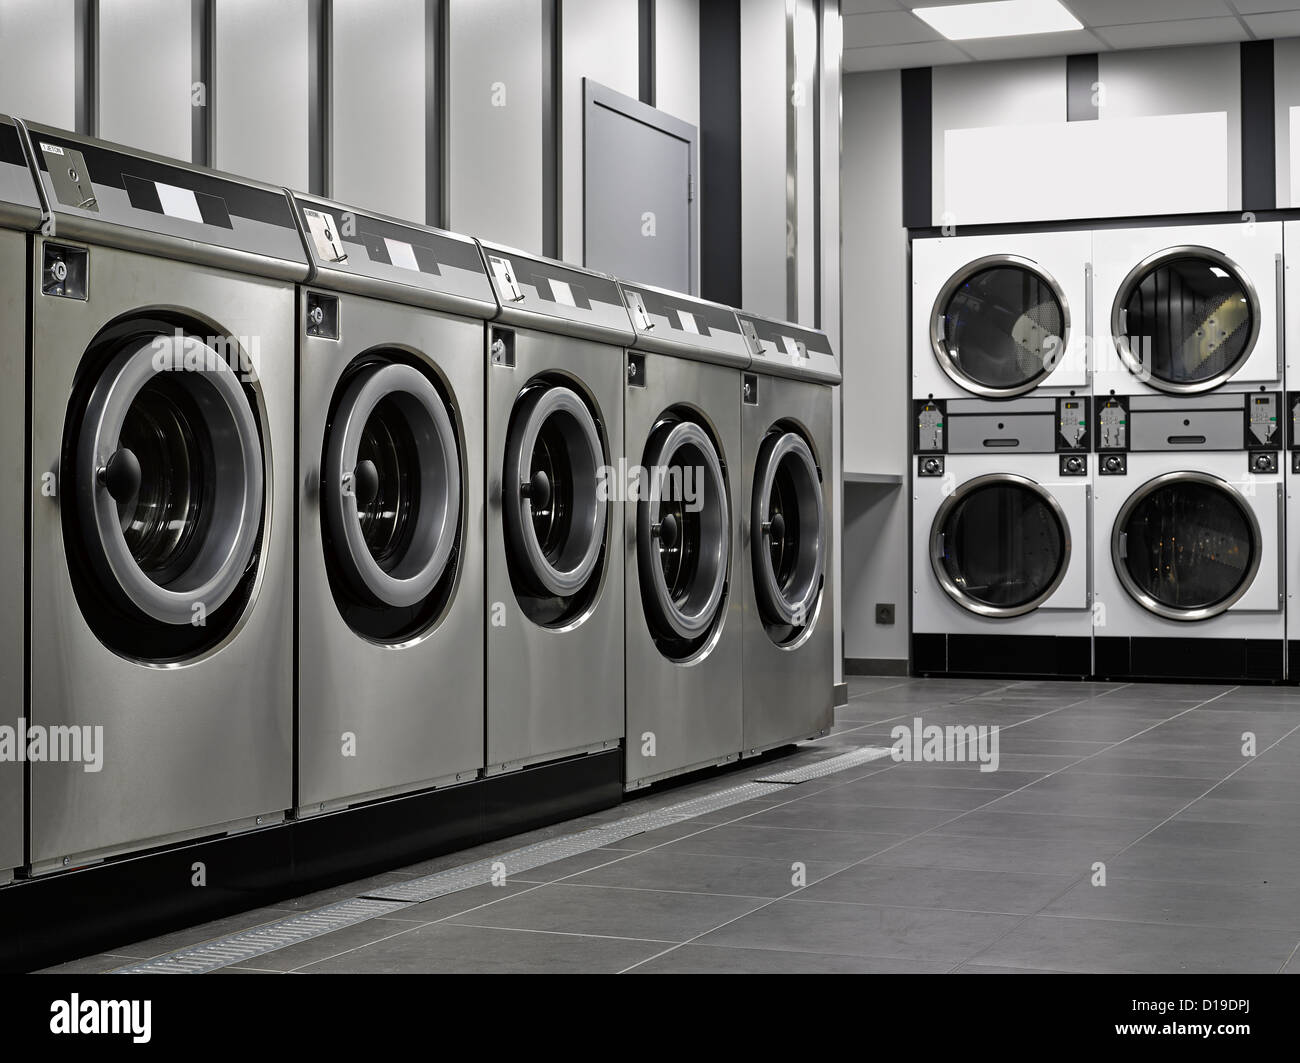 A row of industrial washing machines in a public laundromat - Stock Image